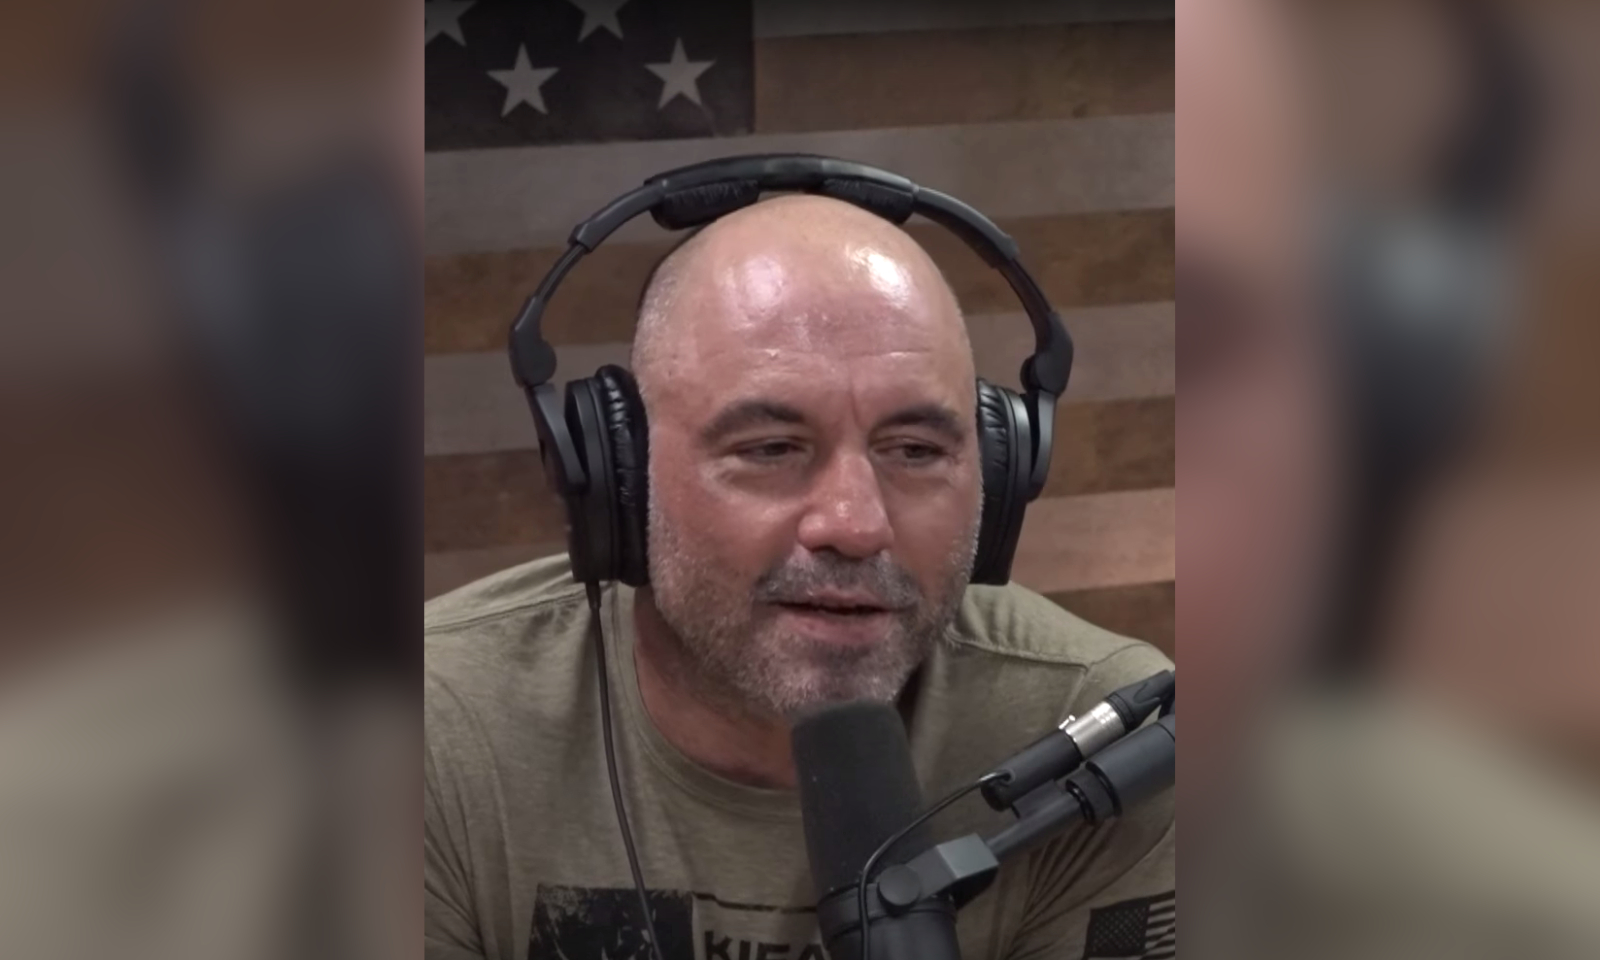 Joe Rogan Petition Created For UFC Commentator To Moderate The 2020 Presidential Debate